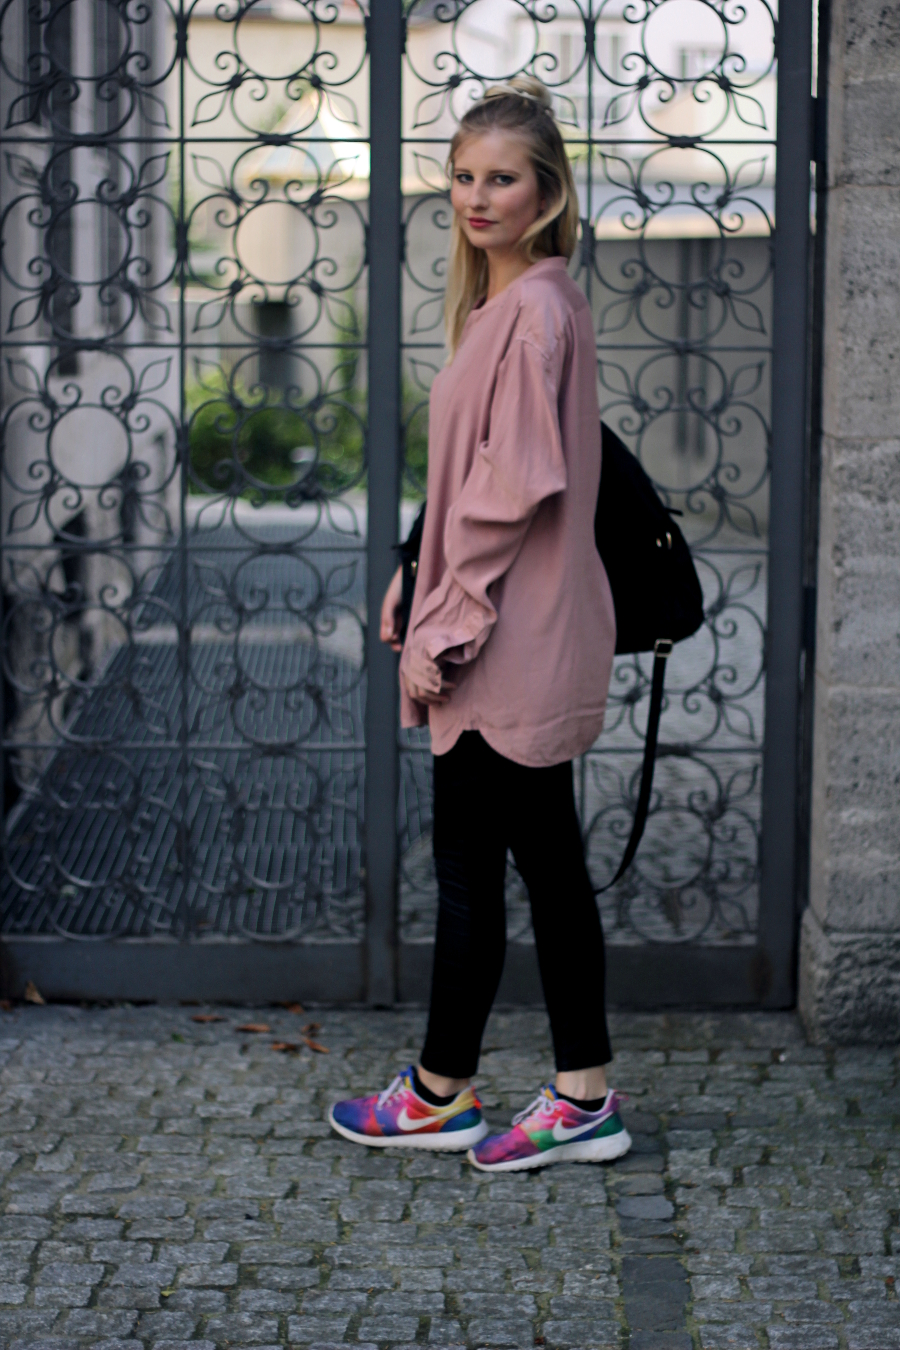 outfit location bockenheimer landstraße oversized blogger fashion blonde ffm vintage comfortable